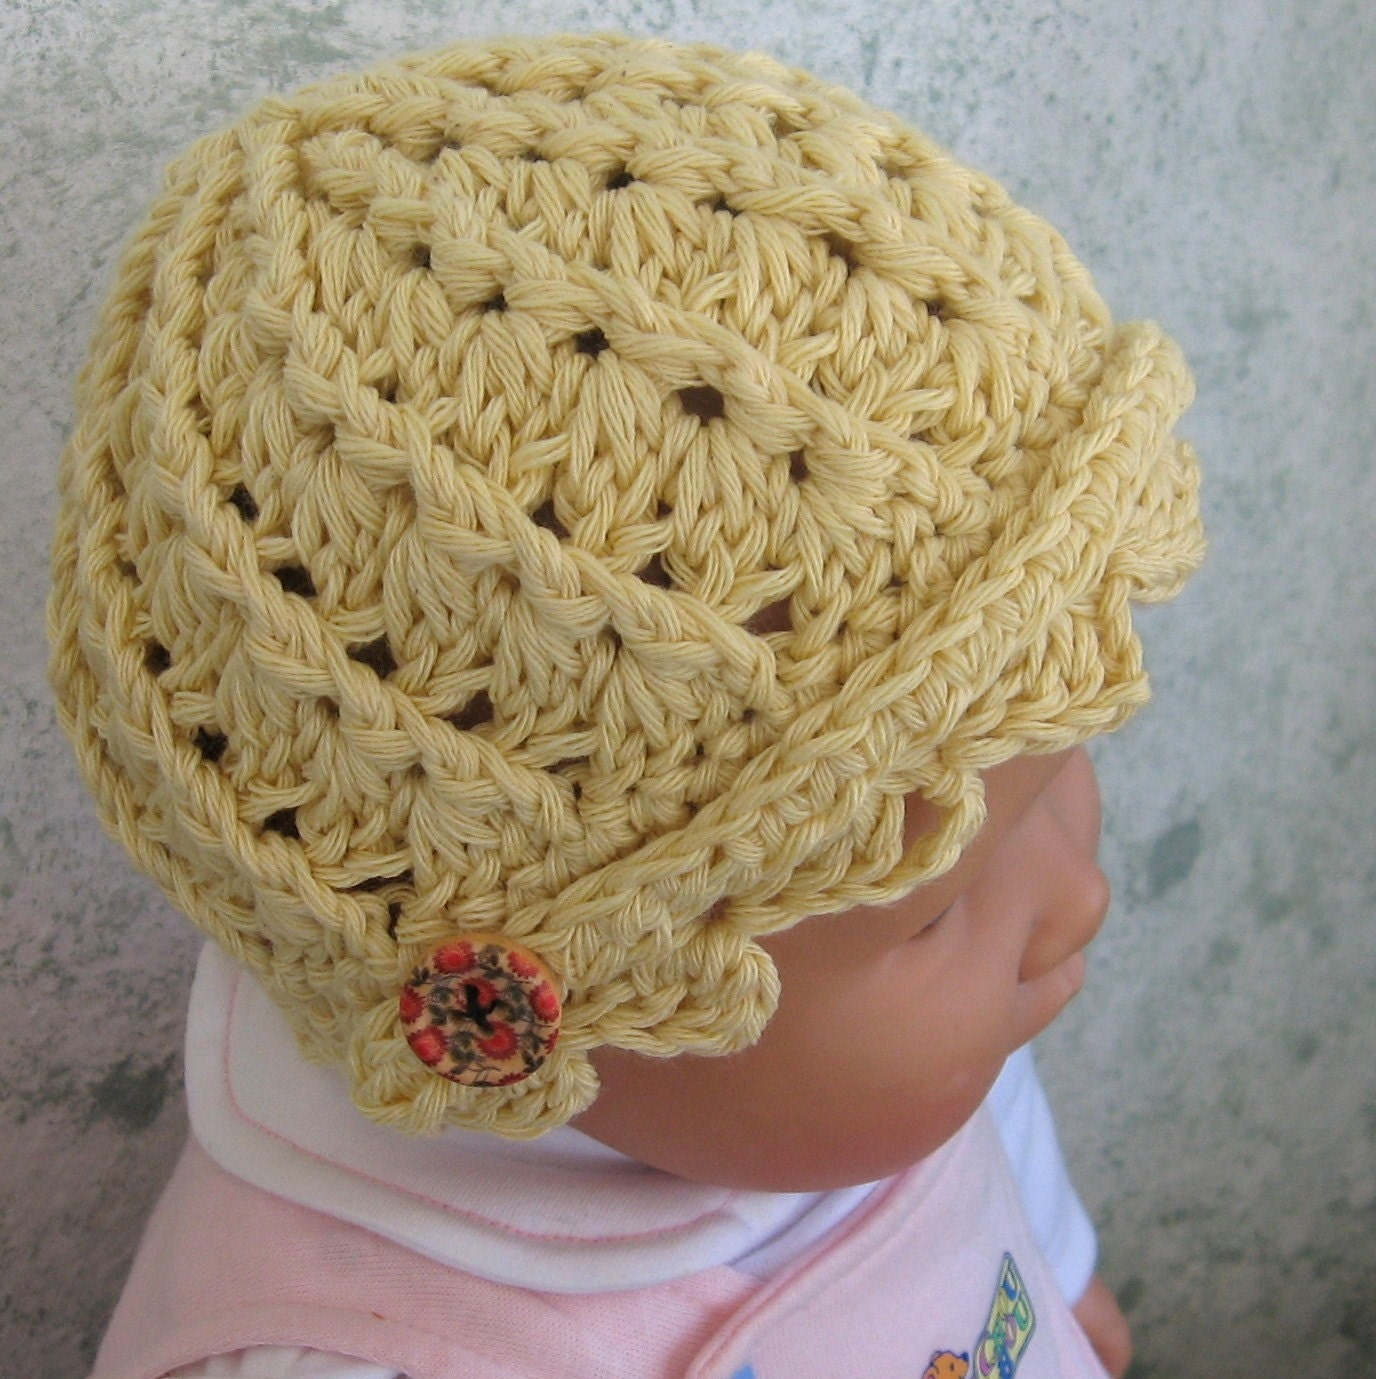 Crochet Ribbed Hat : Crochet Hat Pattern Infant-Toddler Spiral Ribbed by kalliedesigns